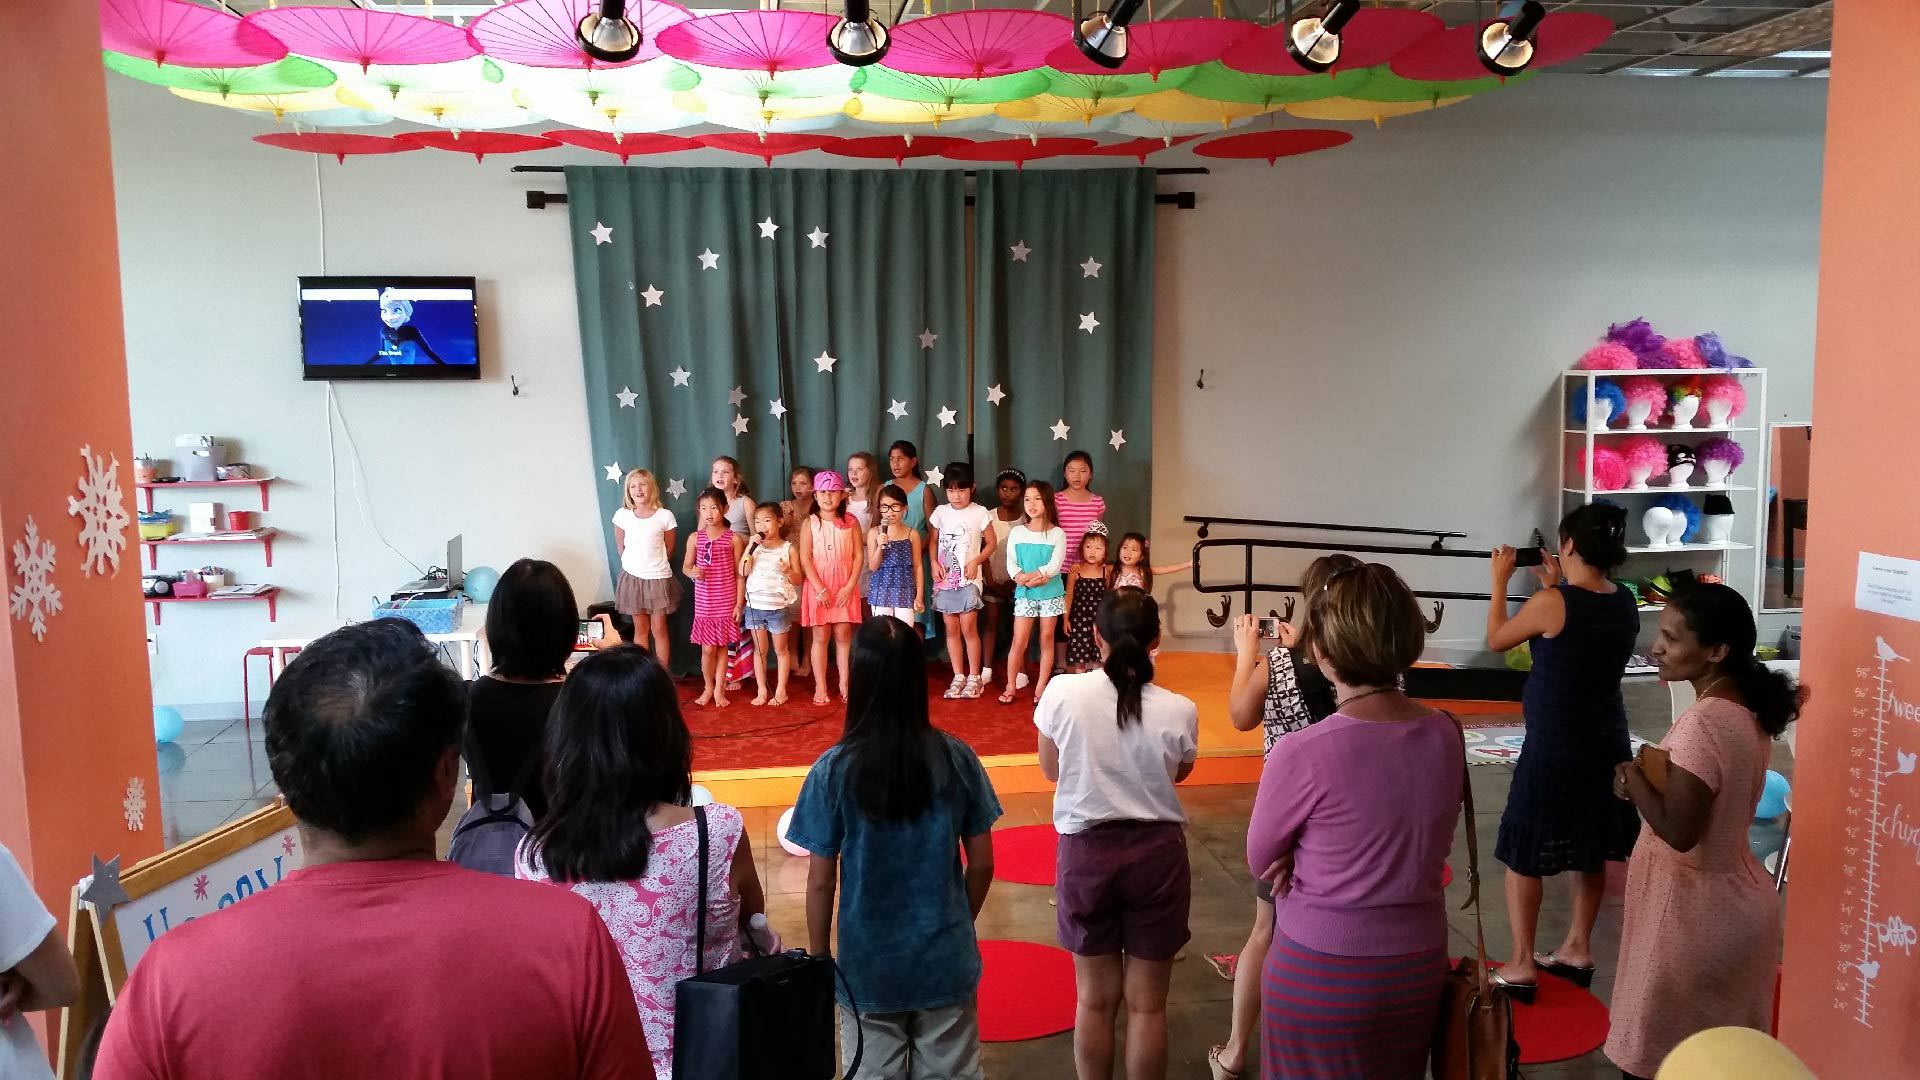 kids singing in front of parents